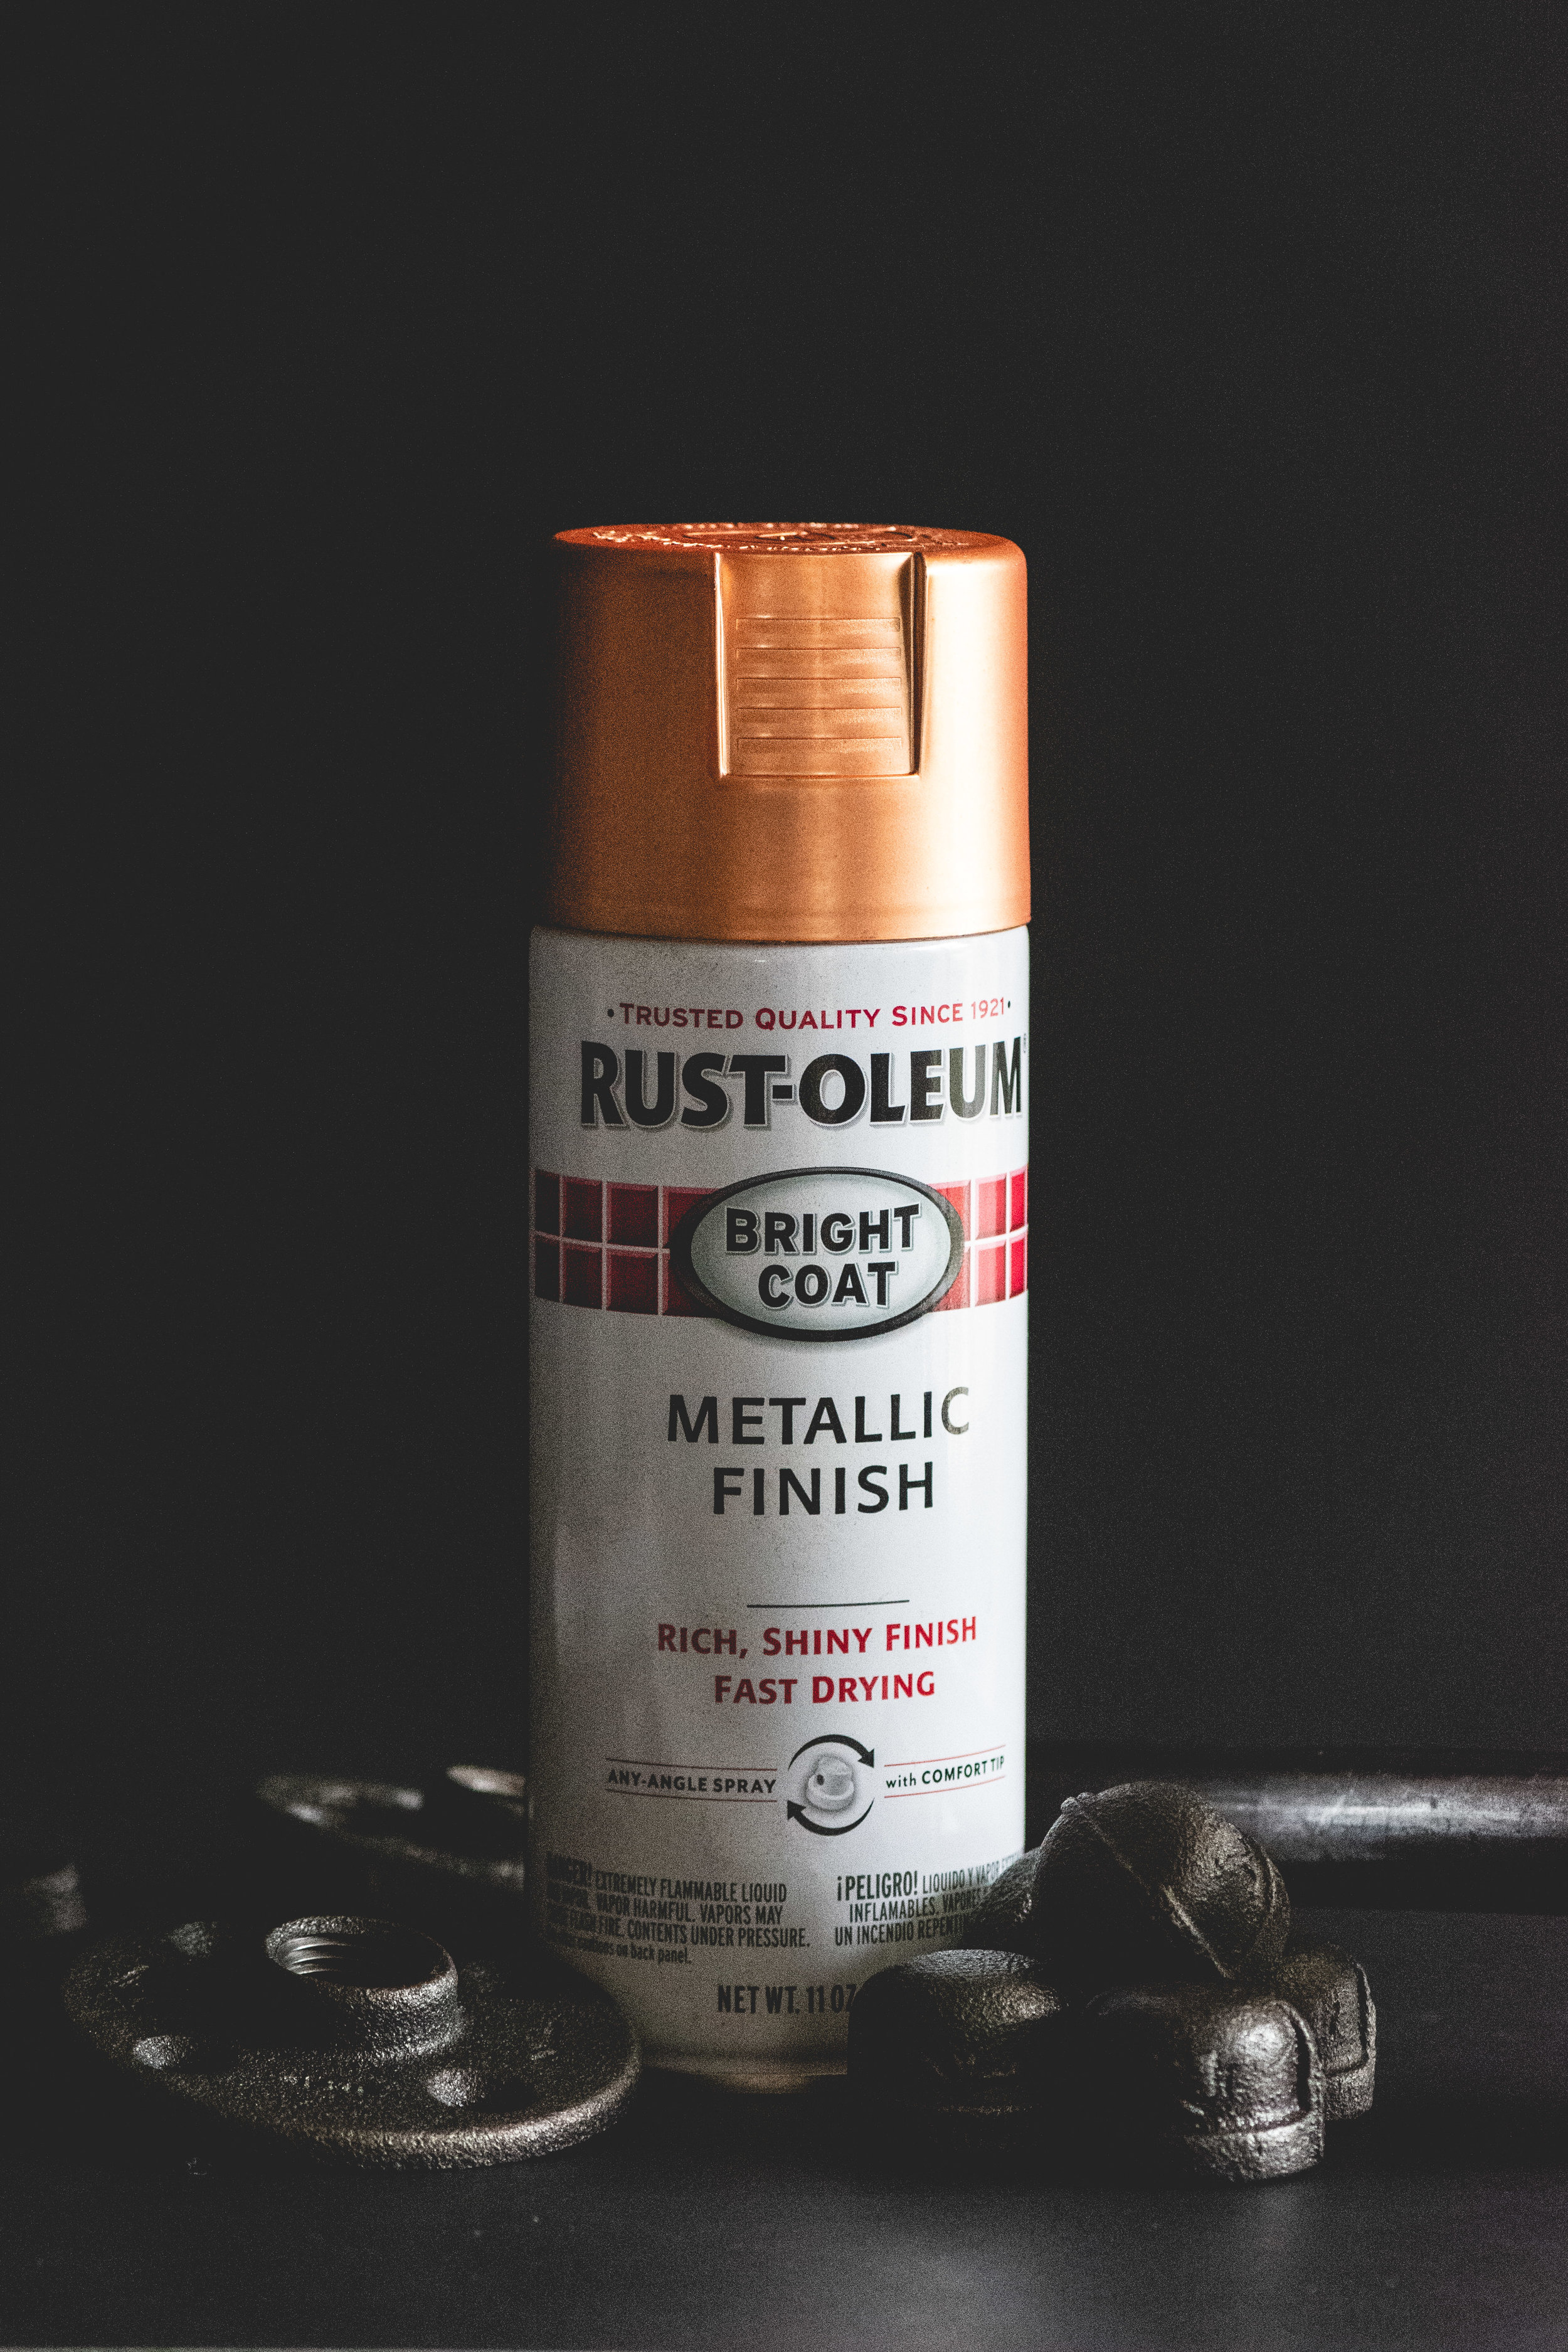 Nothing beats Rust-oleum for this kind of job